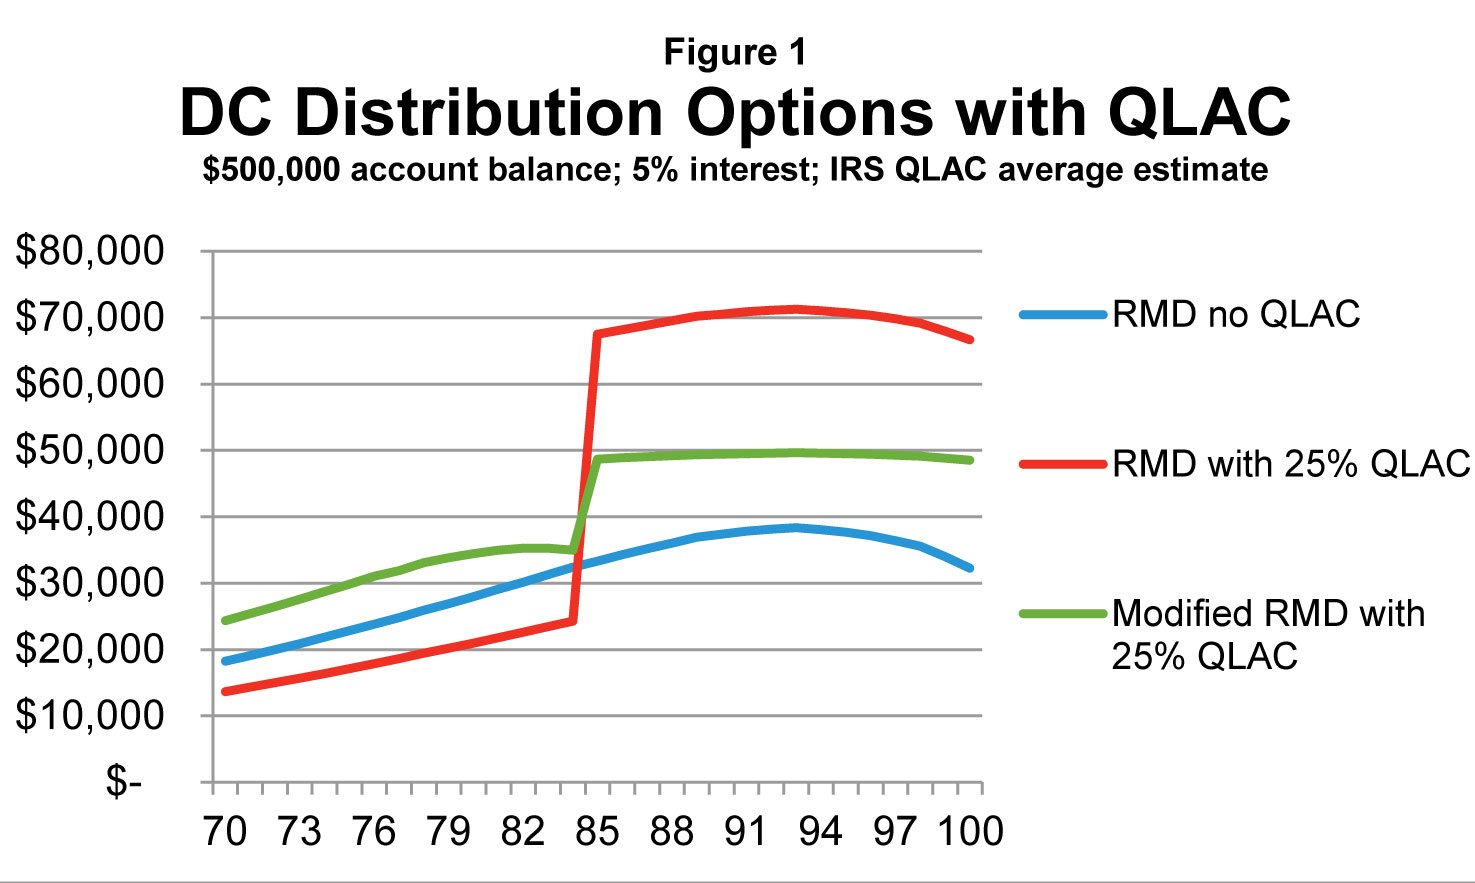 DC Distribution Options with QLAC